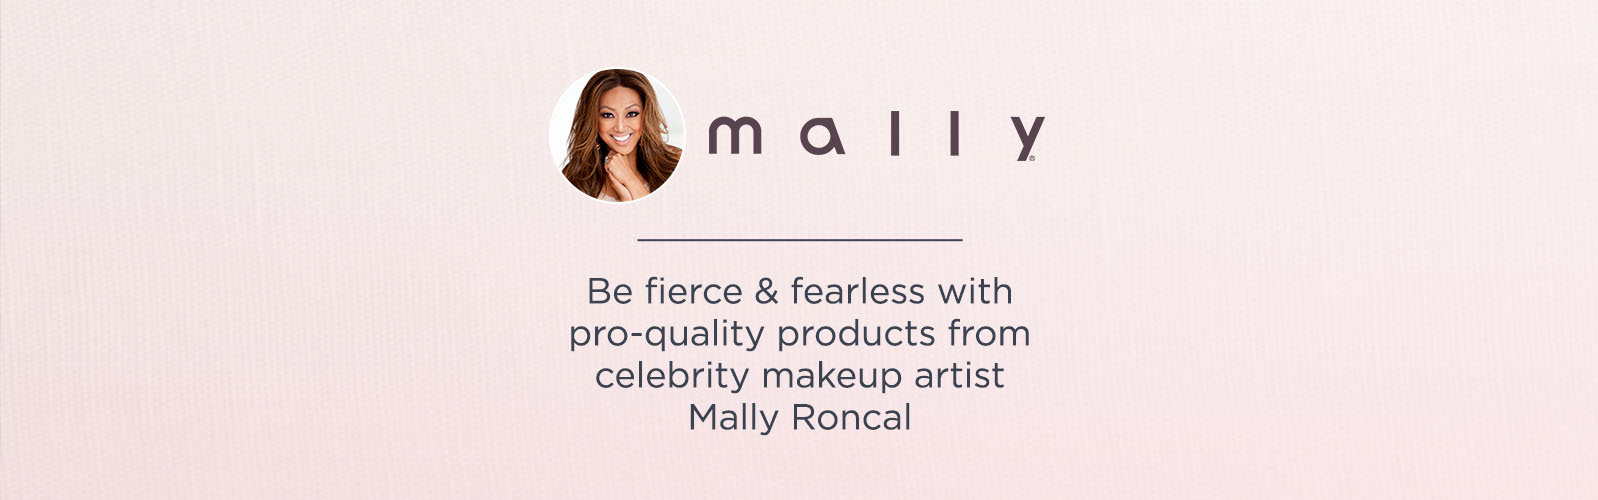 mally - Be fierce & fearless with pro-quality products from celebrity makeup artist Mally Roncal